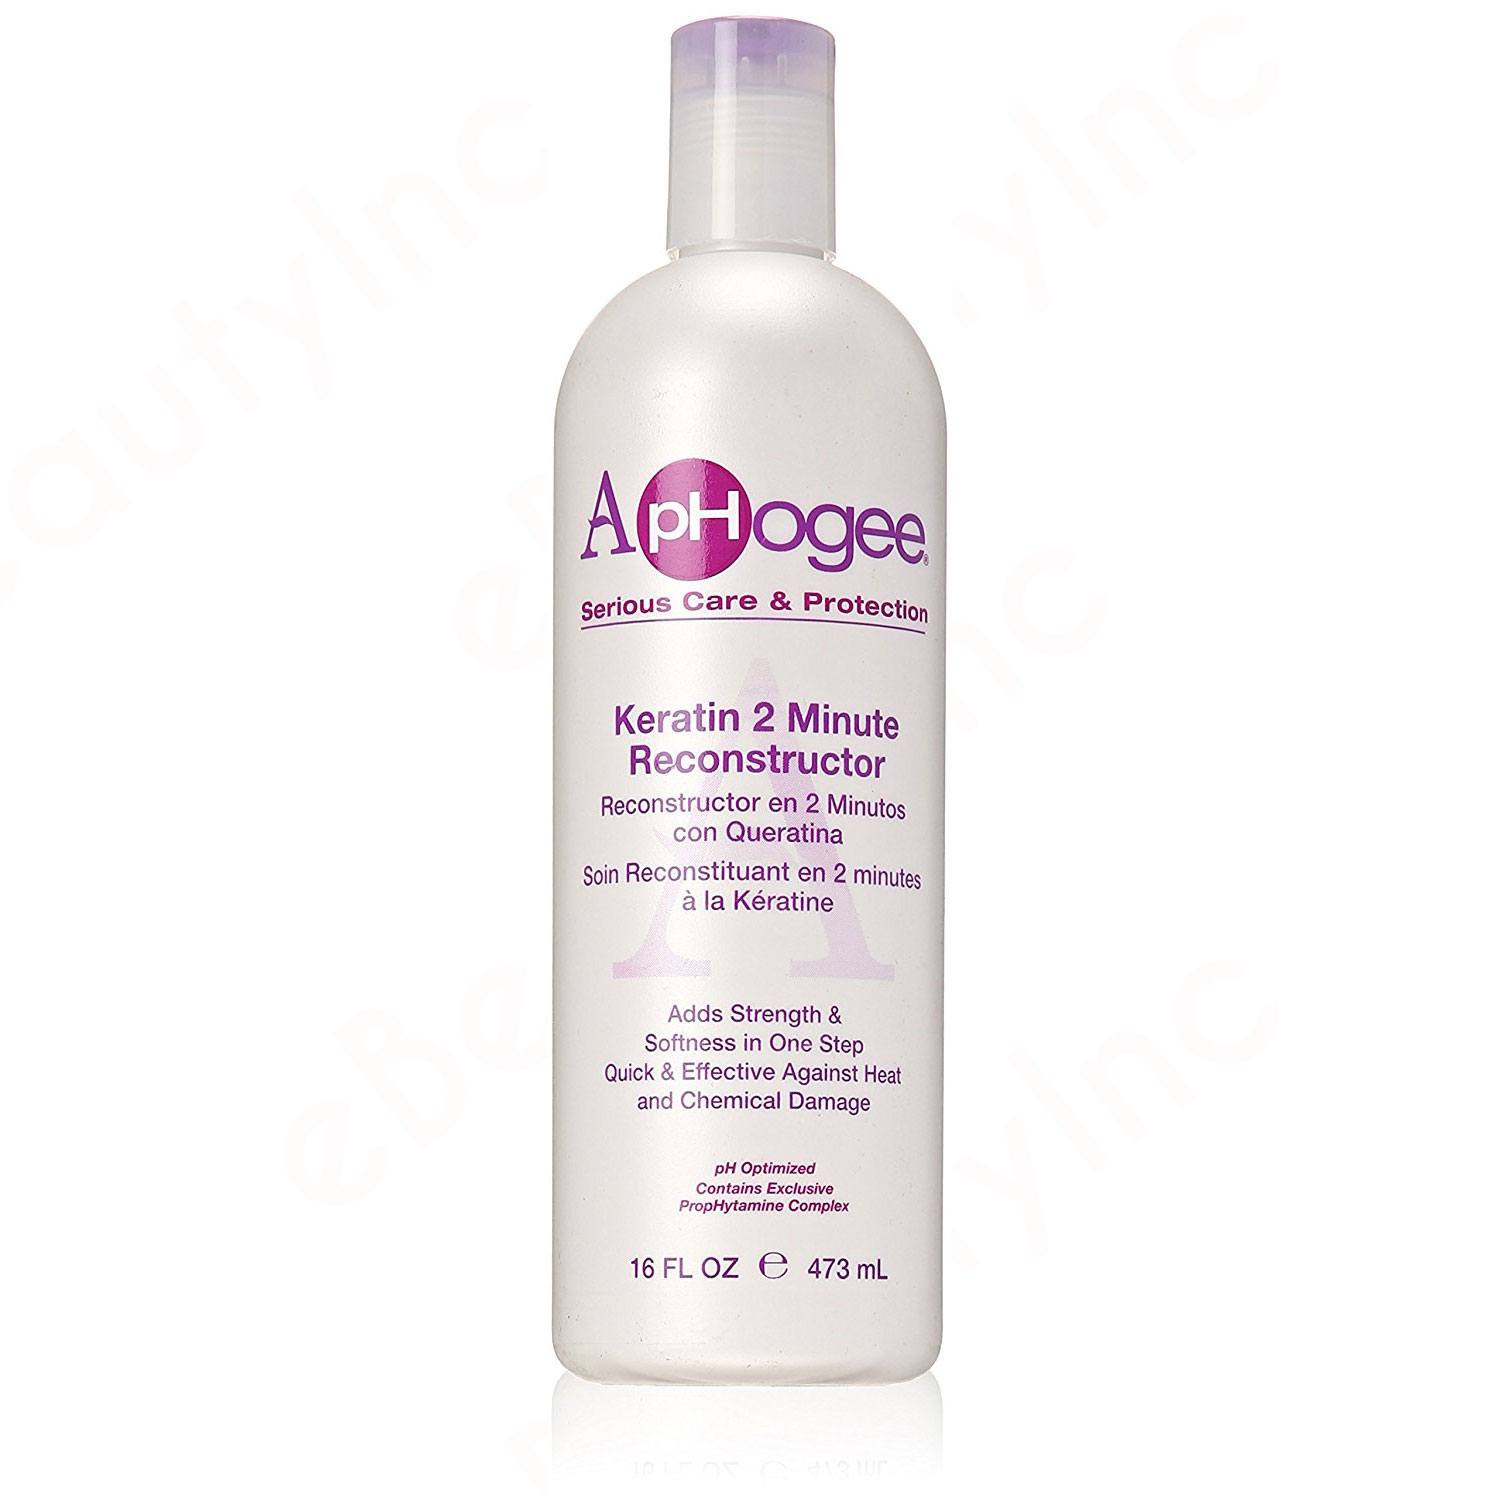 Image of Aphogee Keratin 2 Minute Reconstructor - 16oz